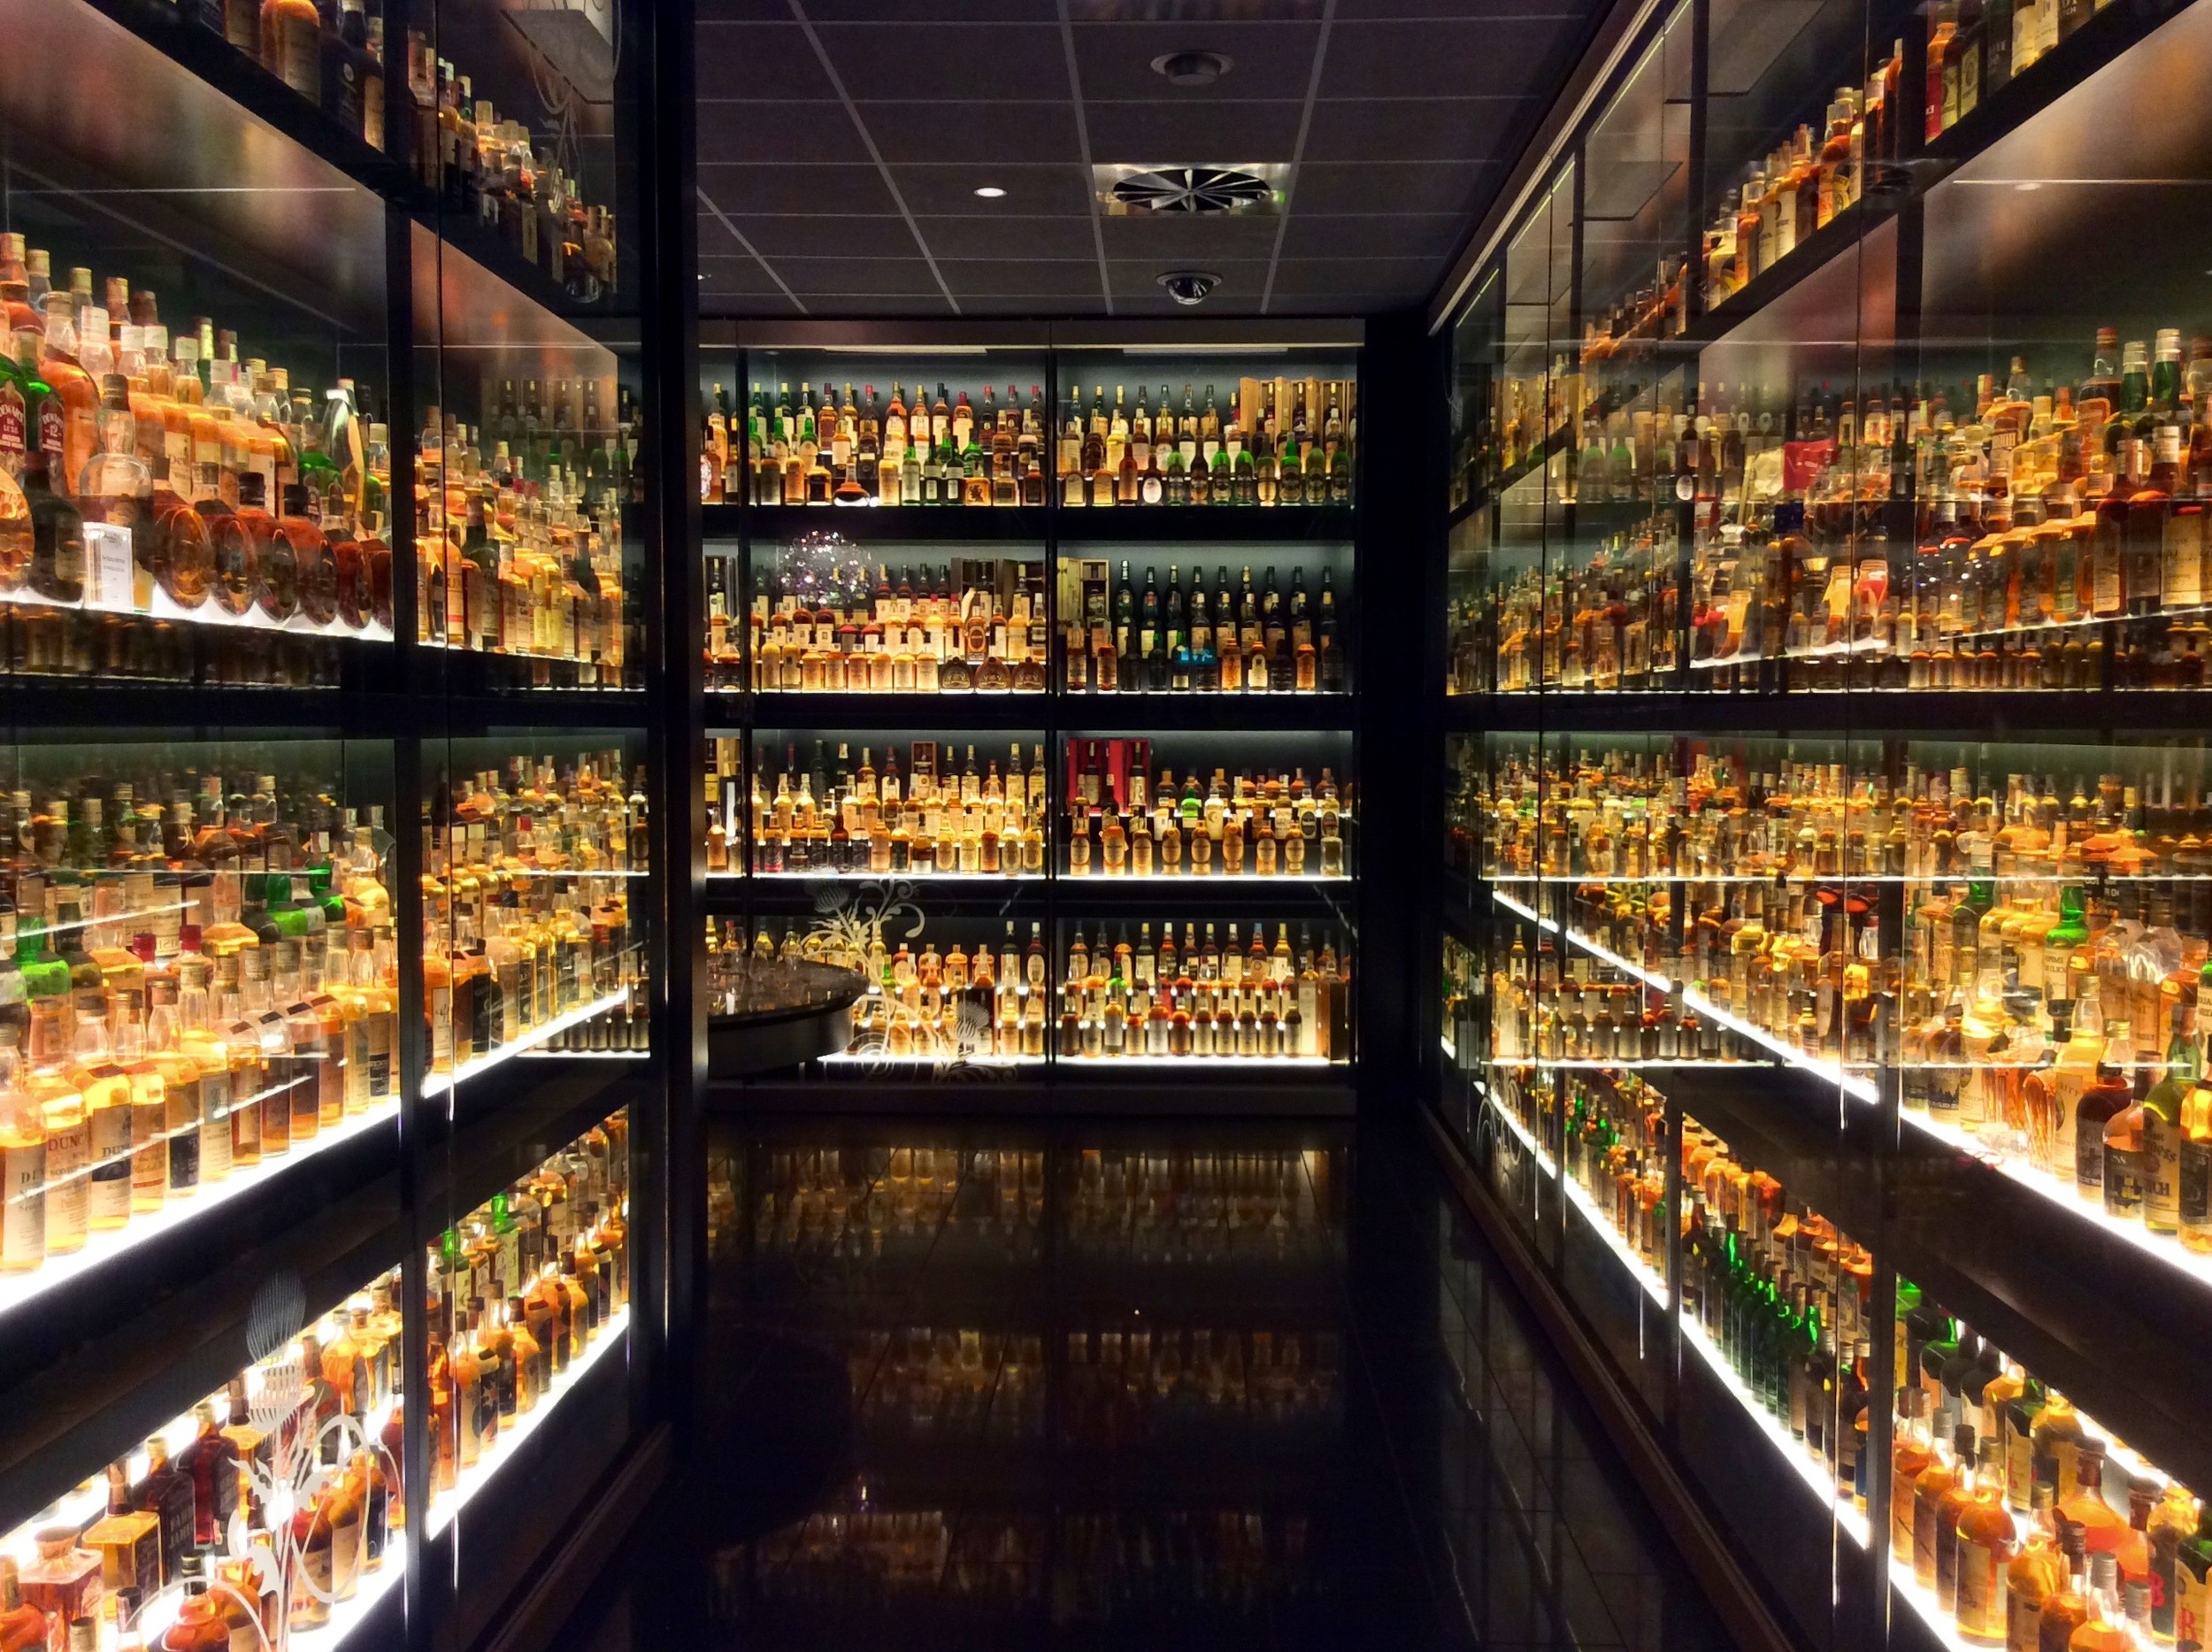 The largest scotch whisky collection in the world